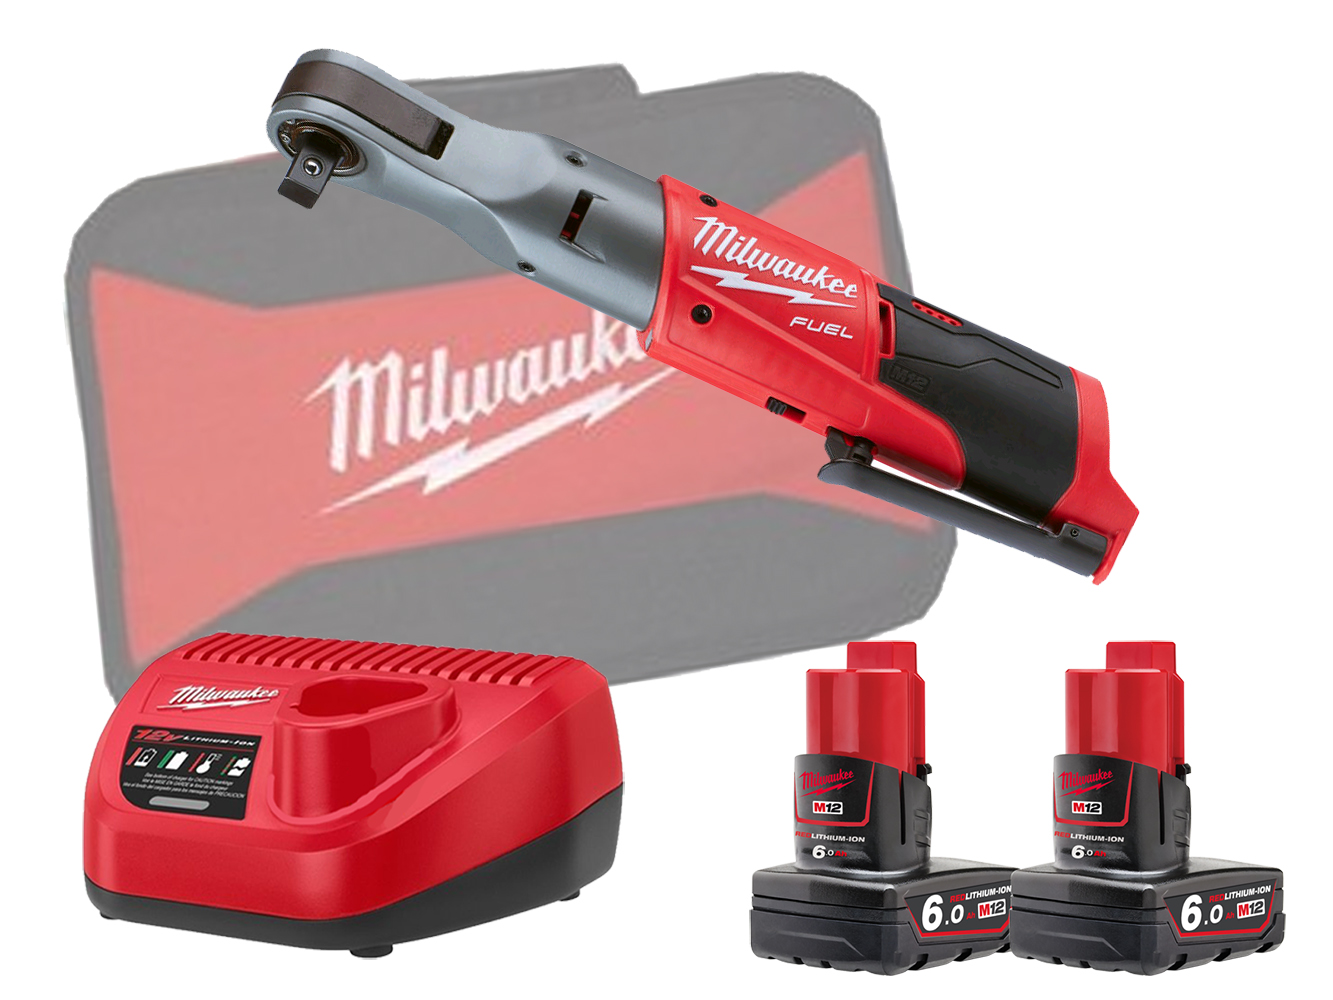 "MILWAUKEE 12V FUEL BRUSHLESS 1/2"" IMPACT RATCHET - M12FIR12 - 6.0AH PACK"